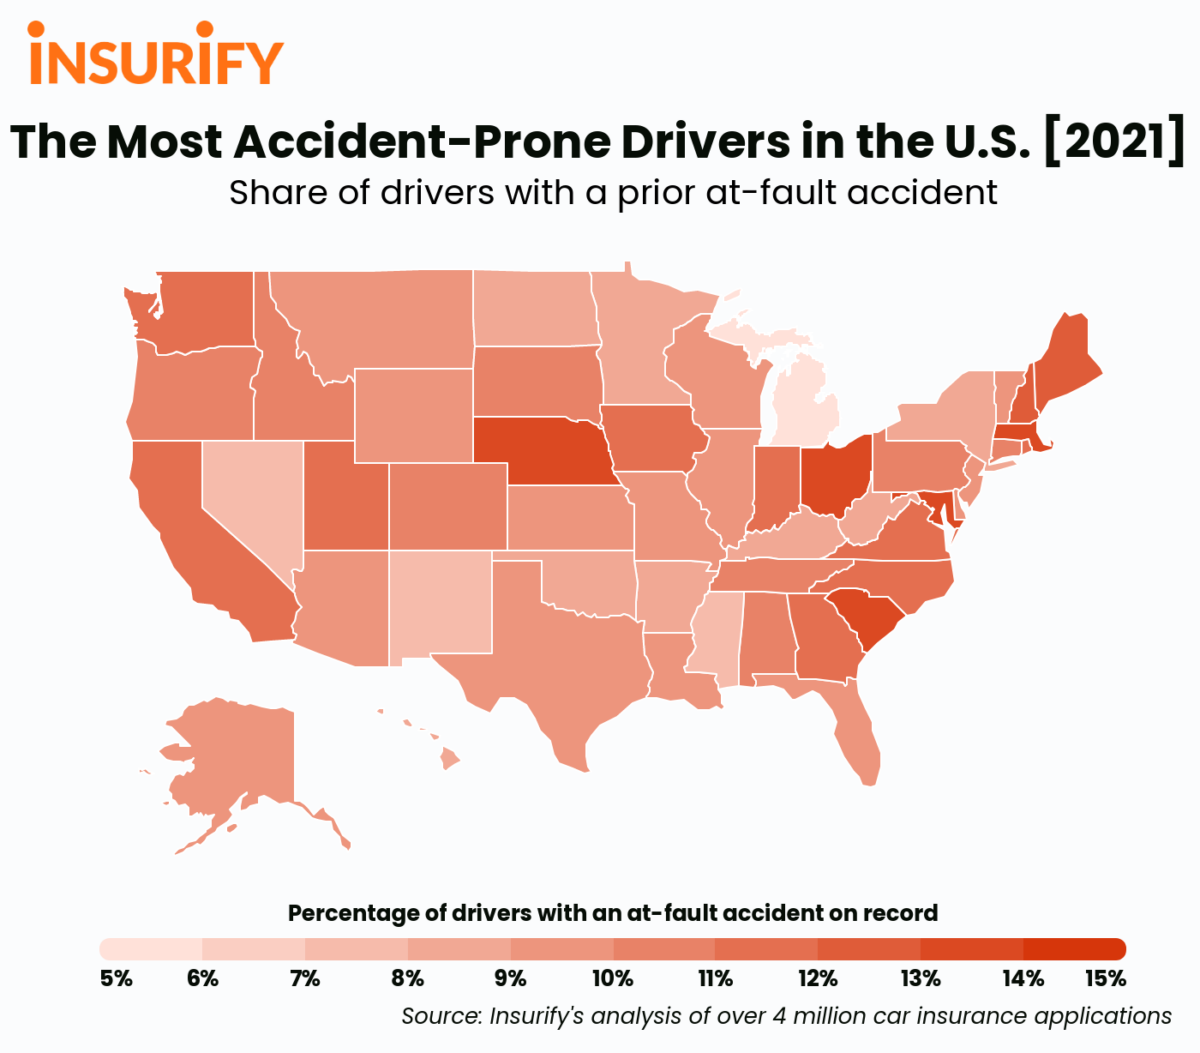 A heat map of the United States showing the at-fault accident in every state in 2021.